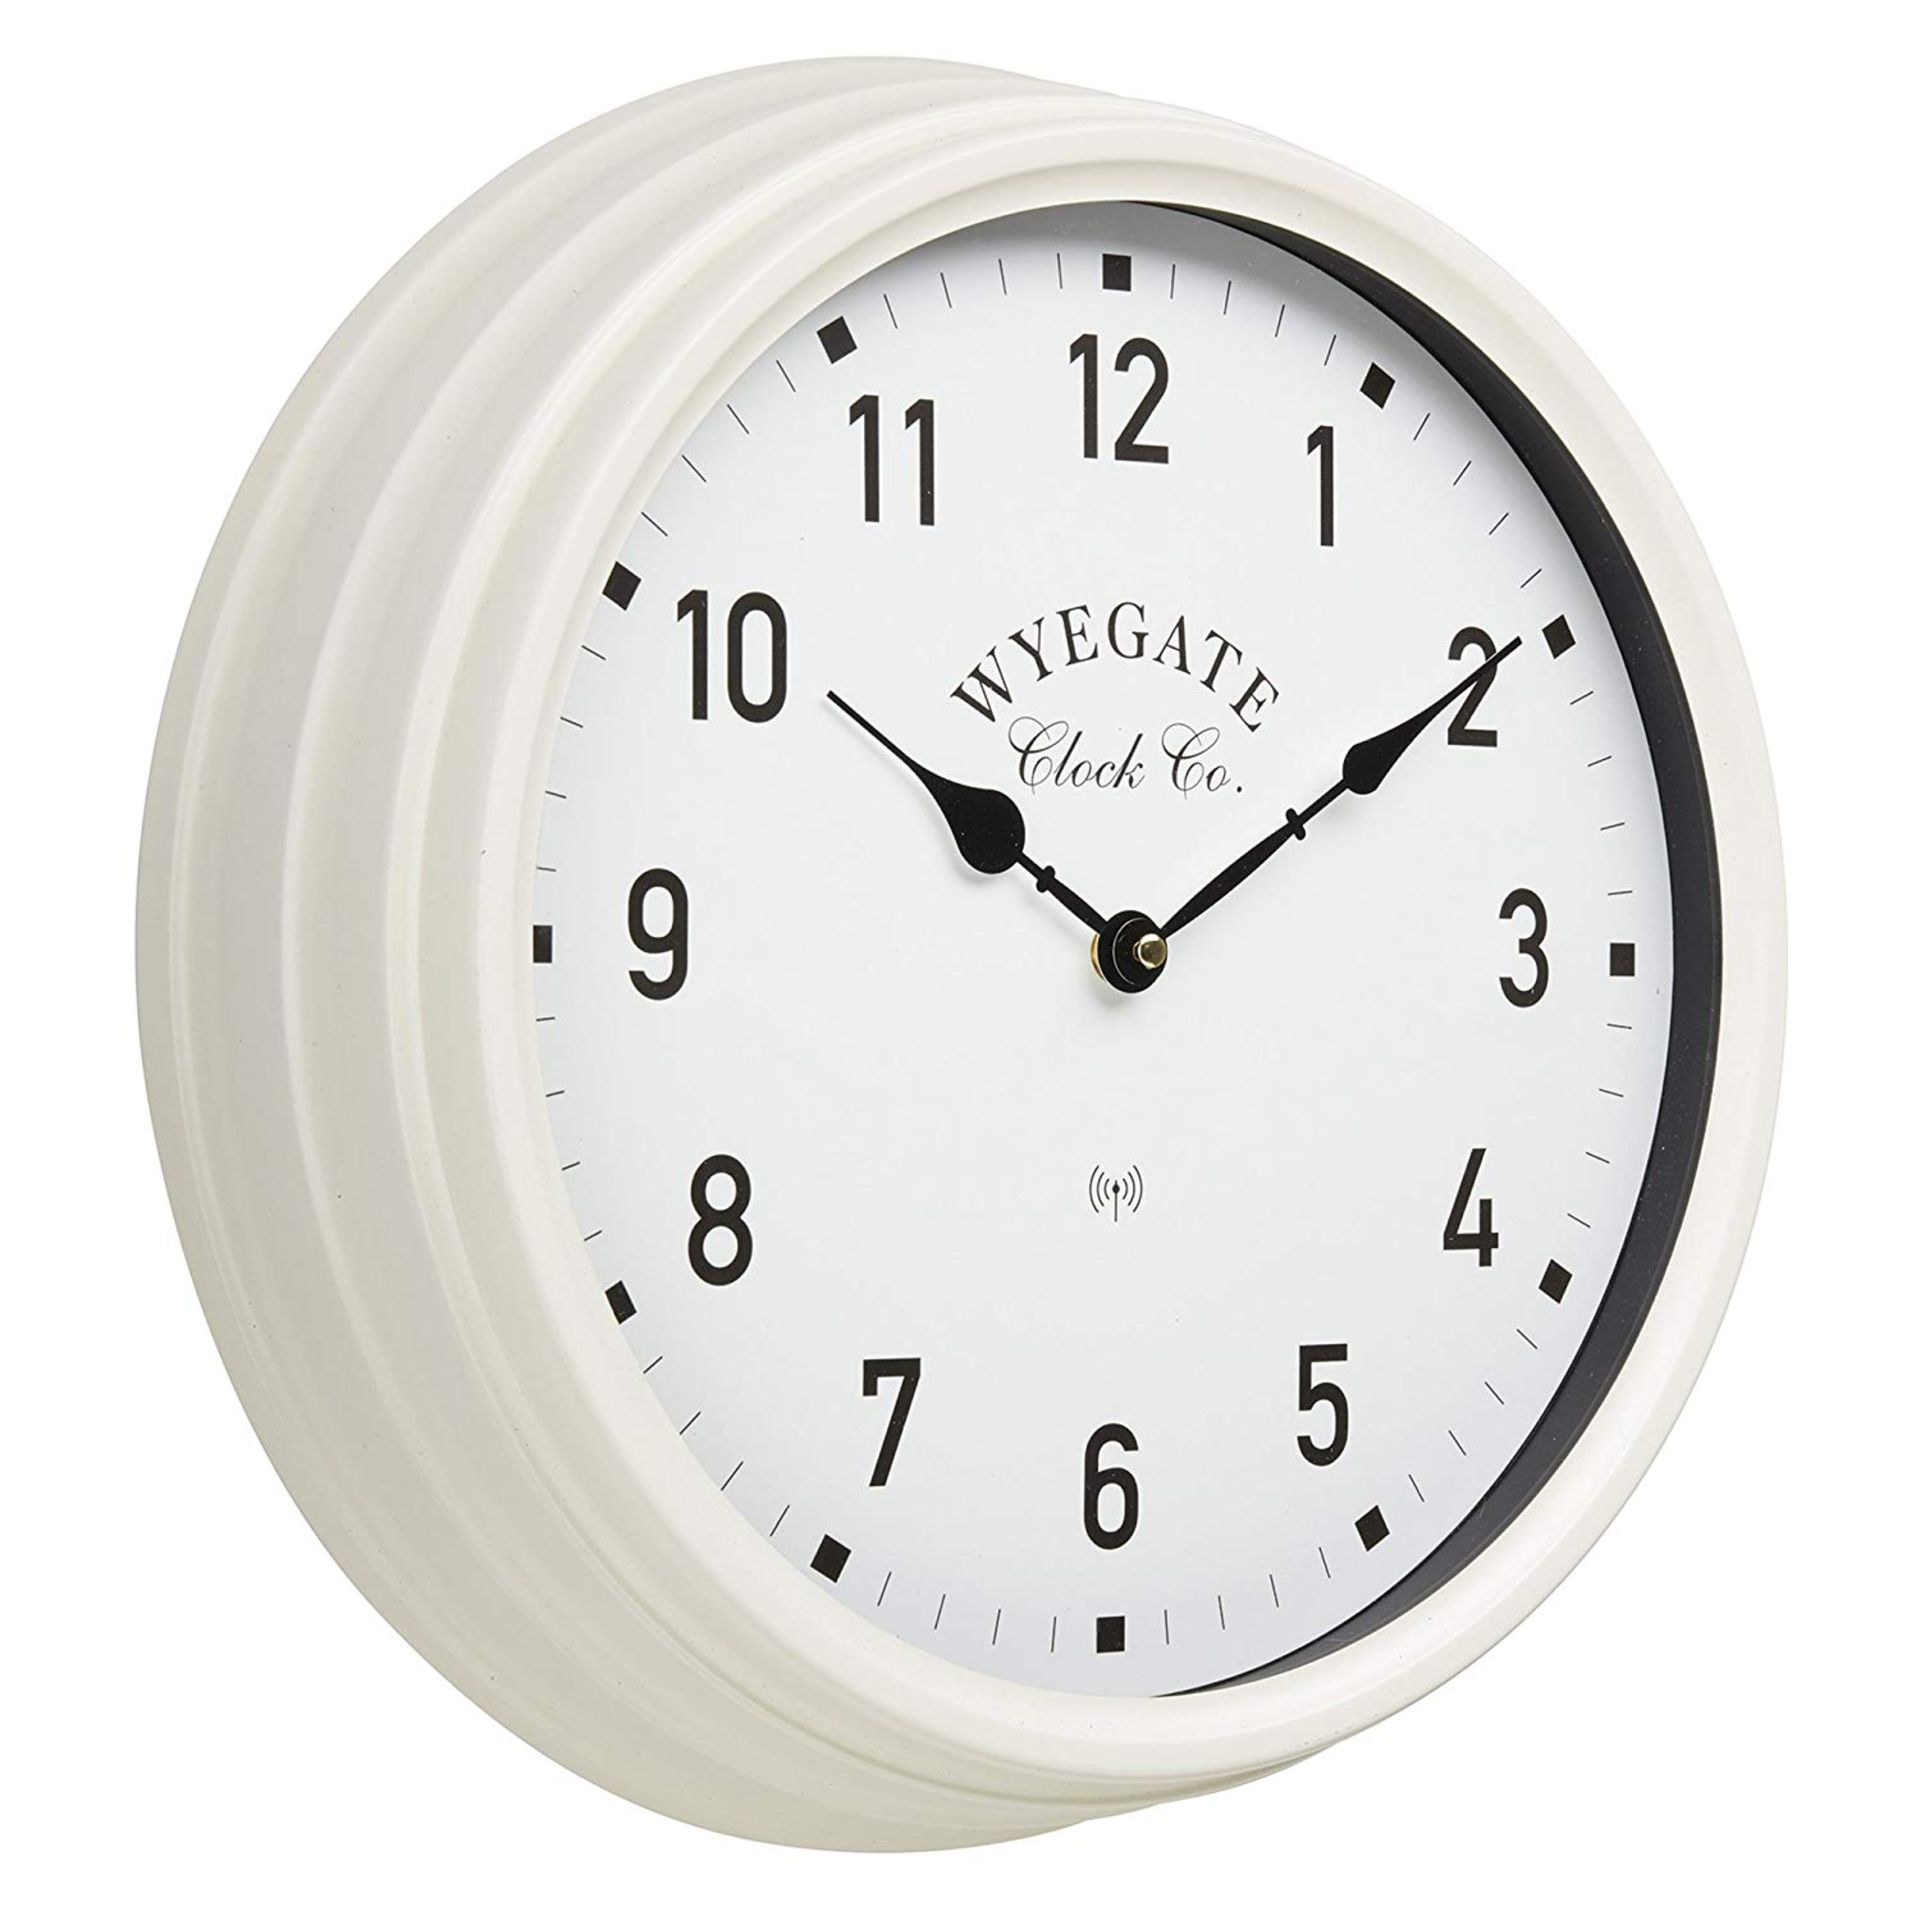 Lot 18023 - V Brand New Big Wyegate Garden/Indoor Clock (Radio Controlled) - 39cm - Cream - RRP £24.99 -